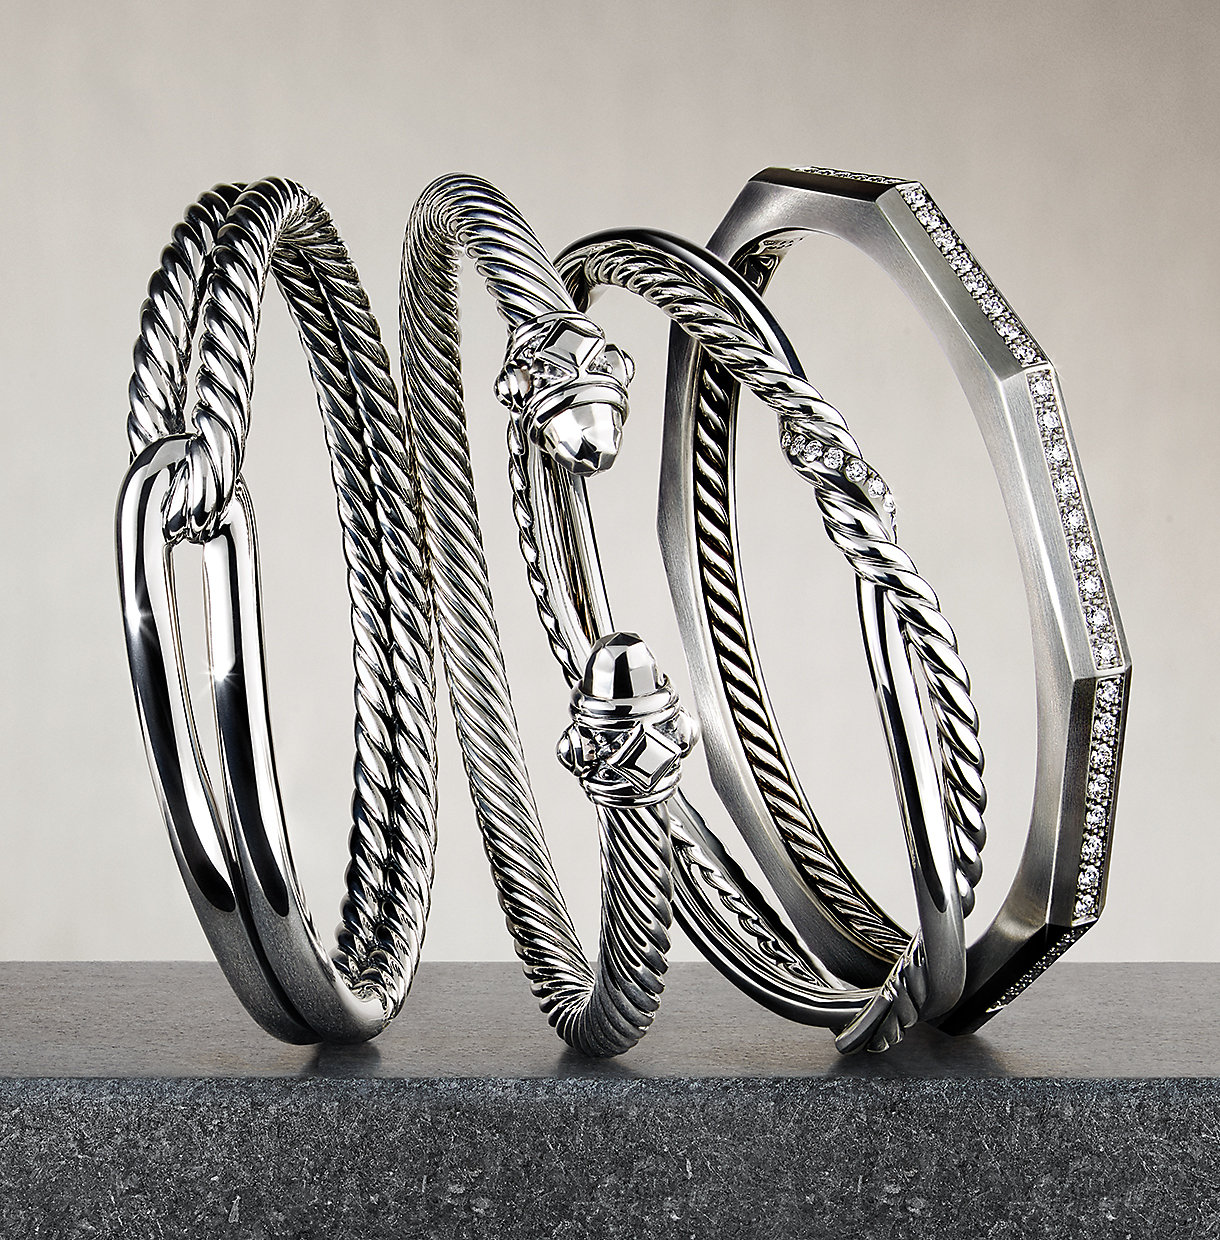 A stack of sterling silver and diamond bracelets